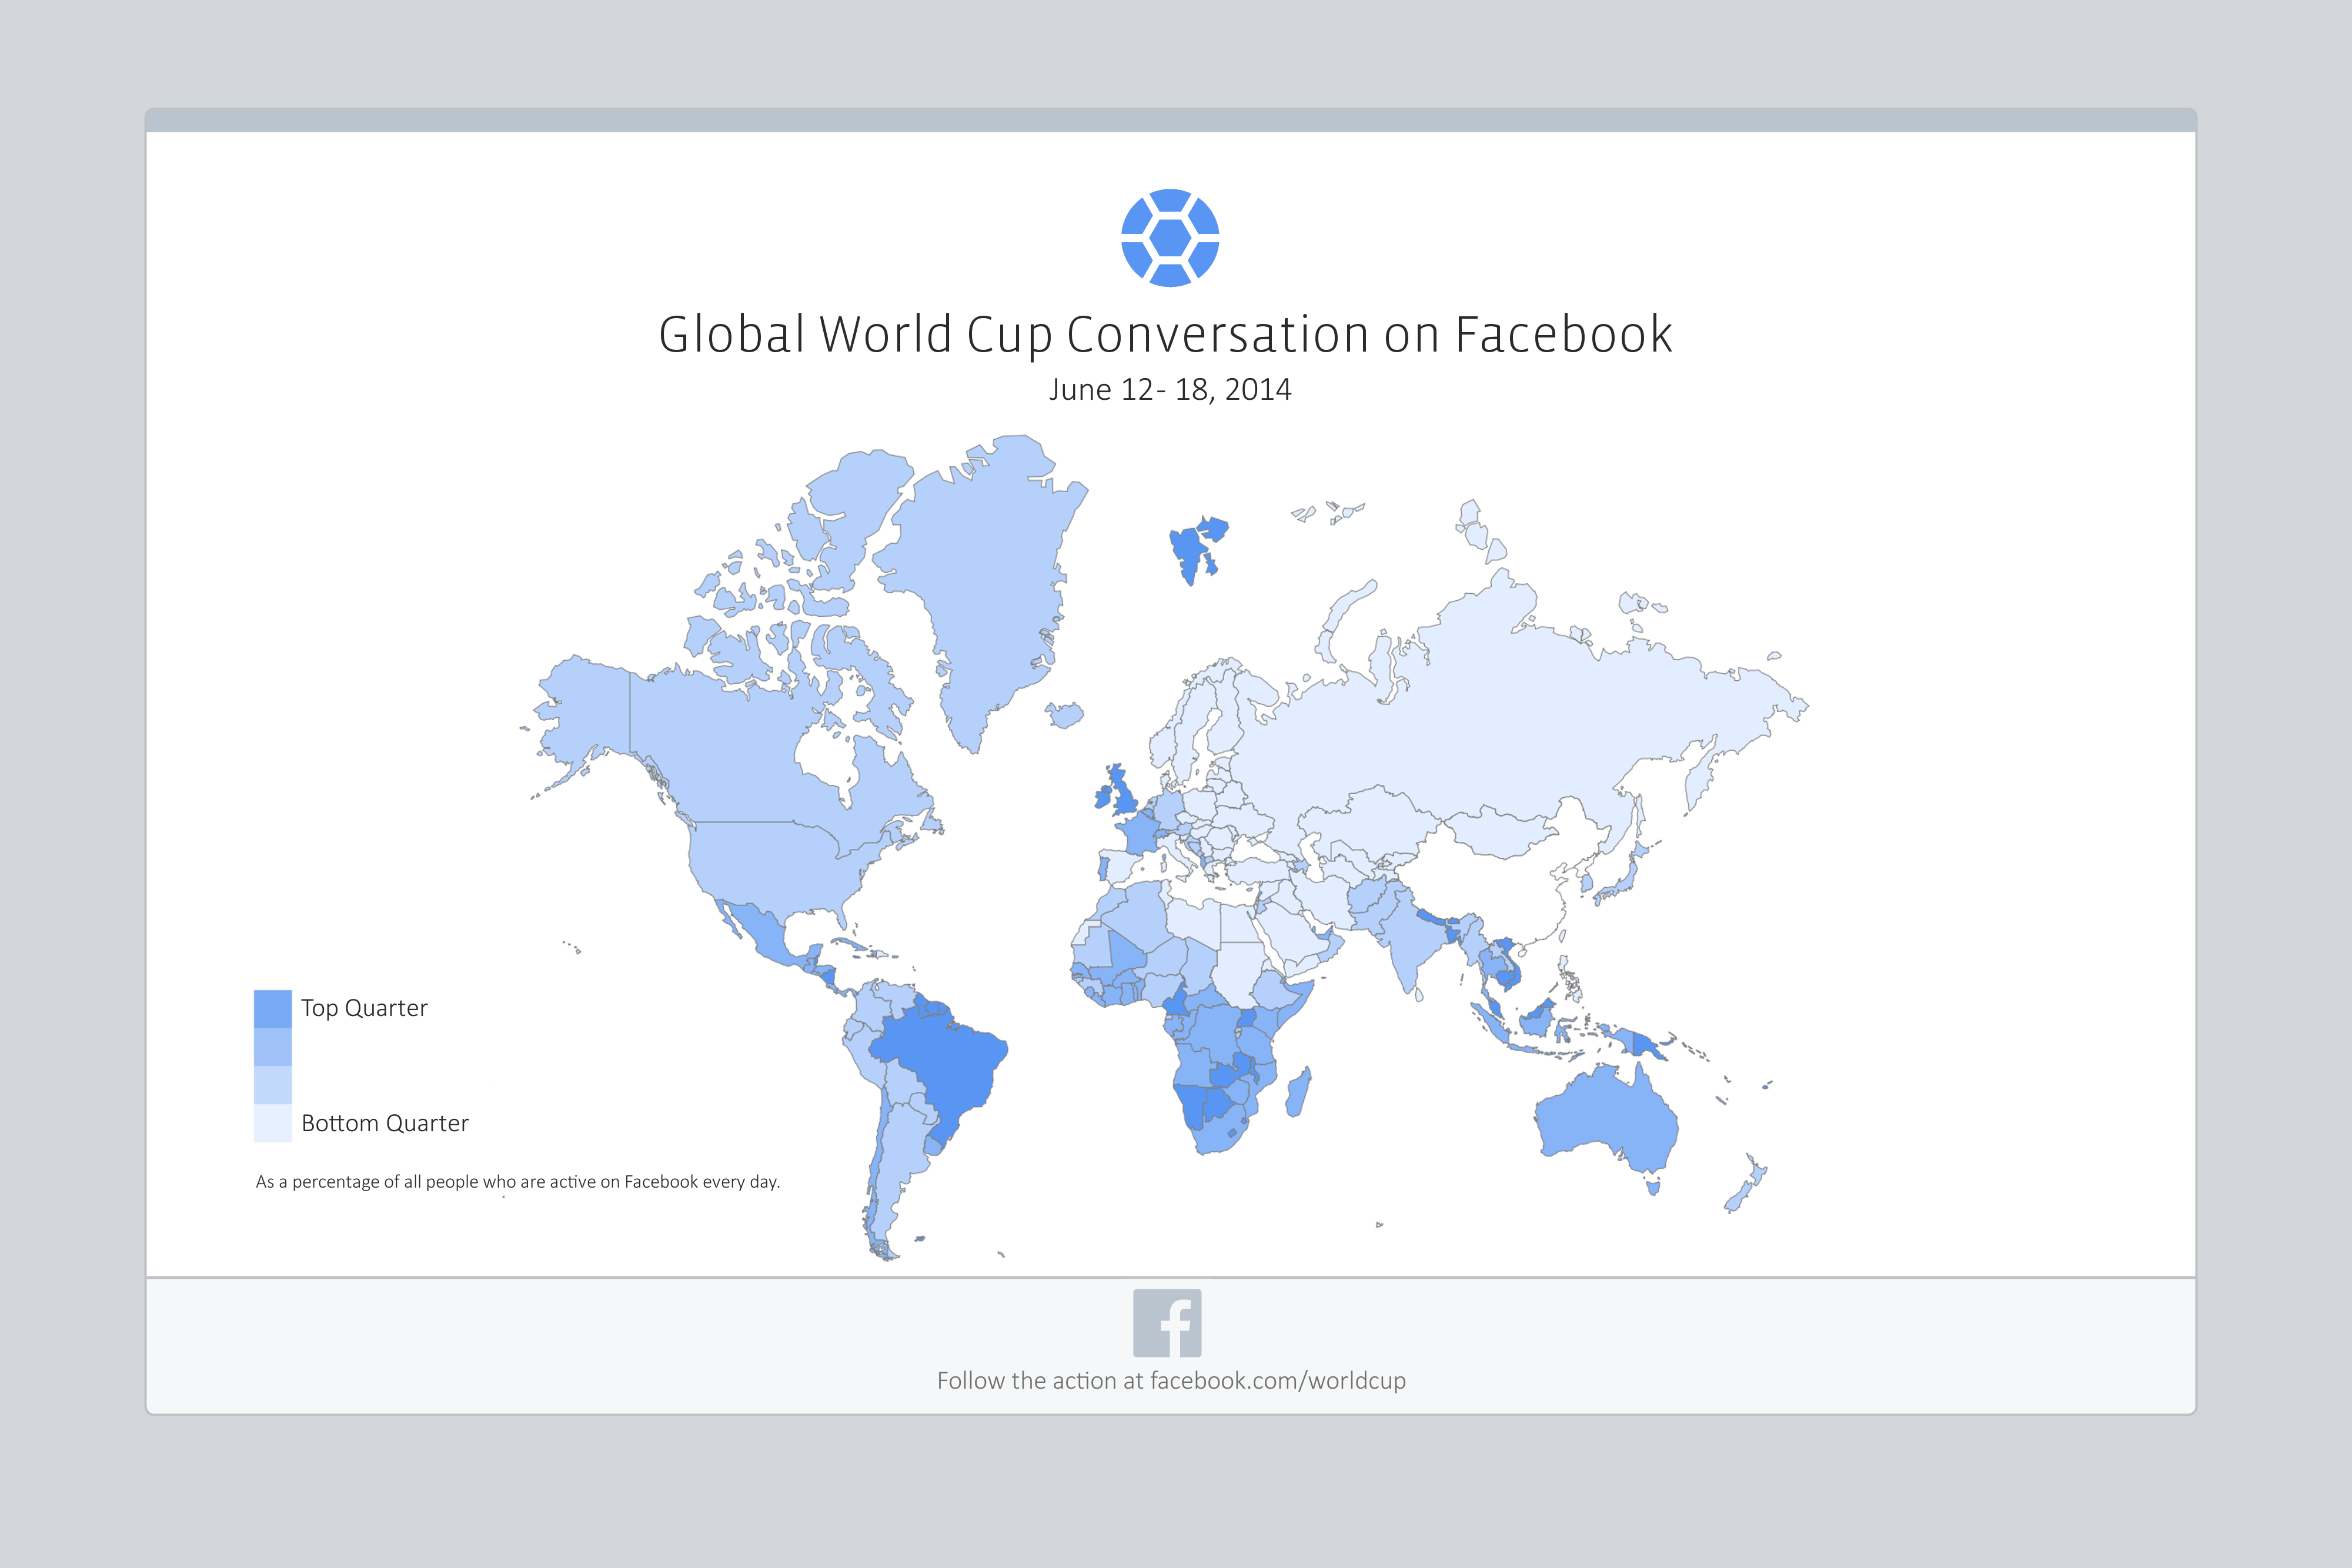 World Cup on Facebook Global Map